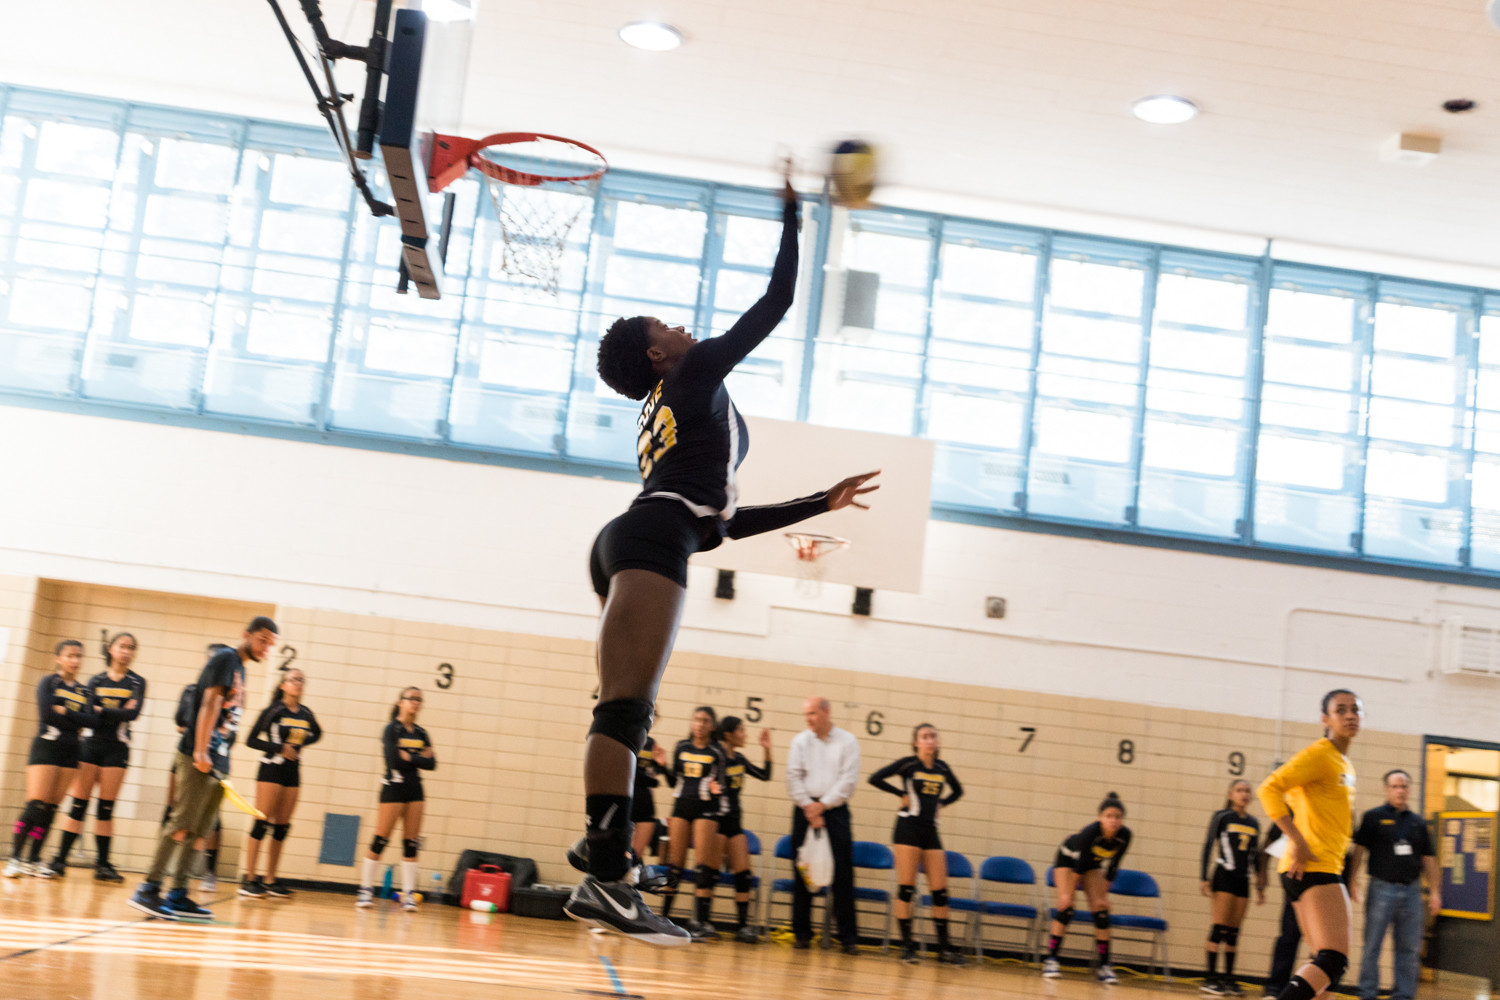 RKA senior Sommer Code was a pivotal cog in the Lady Tigers run to the PSAL volleyball championship for a second straight season.